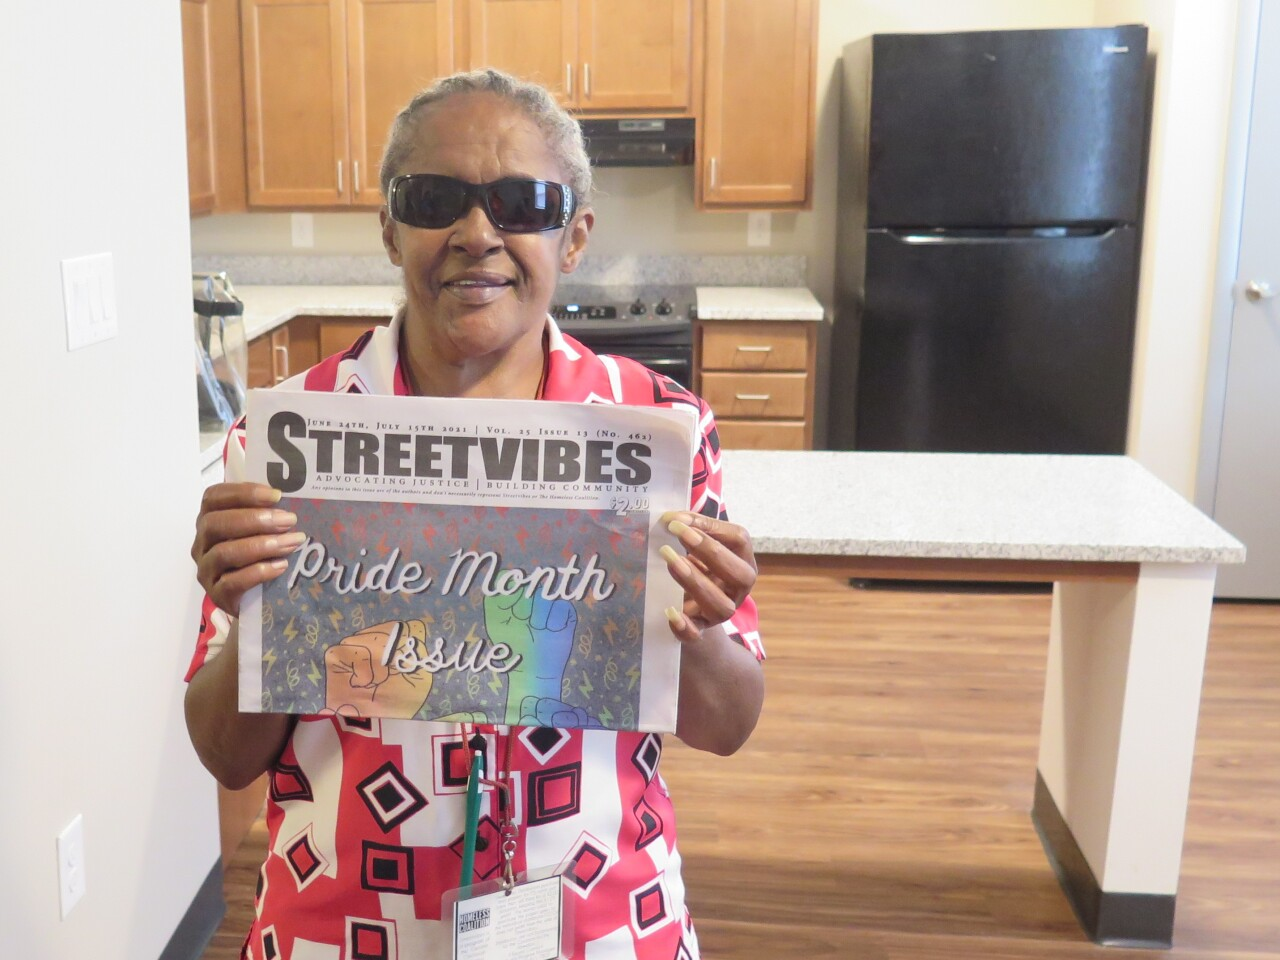 Willa Jones poses with a copy of the Streetvibes newspaper she sells. She's standing in one of the newly renovated Logan Towers apartments. The kitchen's wooden cabinets and new appliances are in the background.